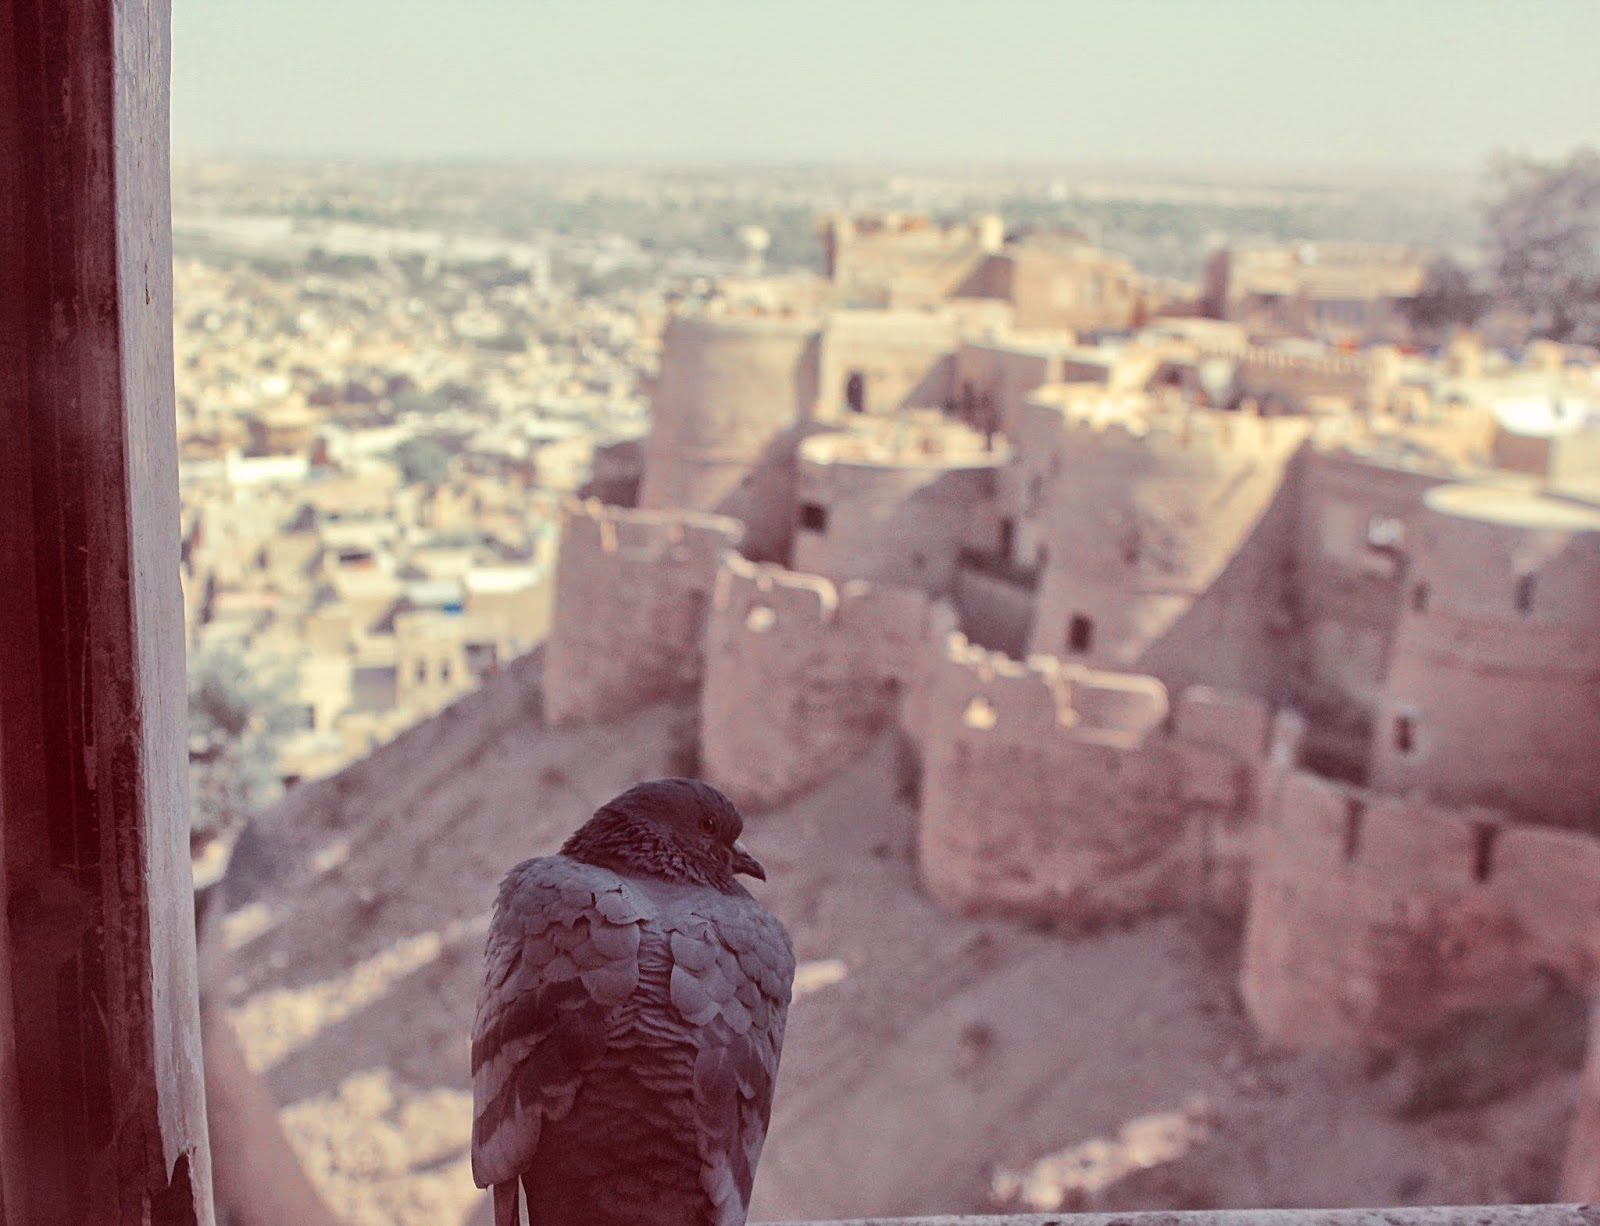 A view from a window at the Grand Fort of Jaisalmer